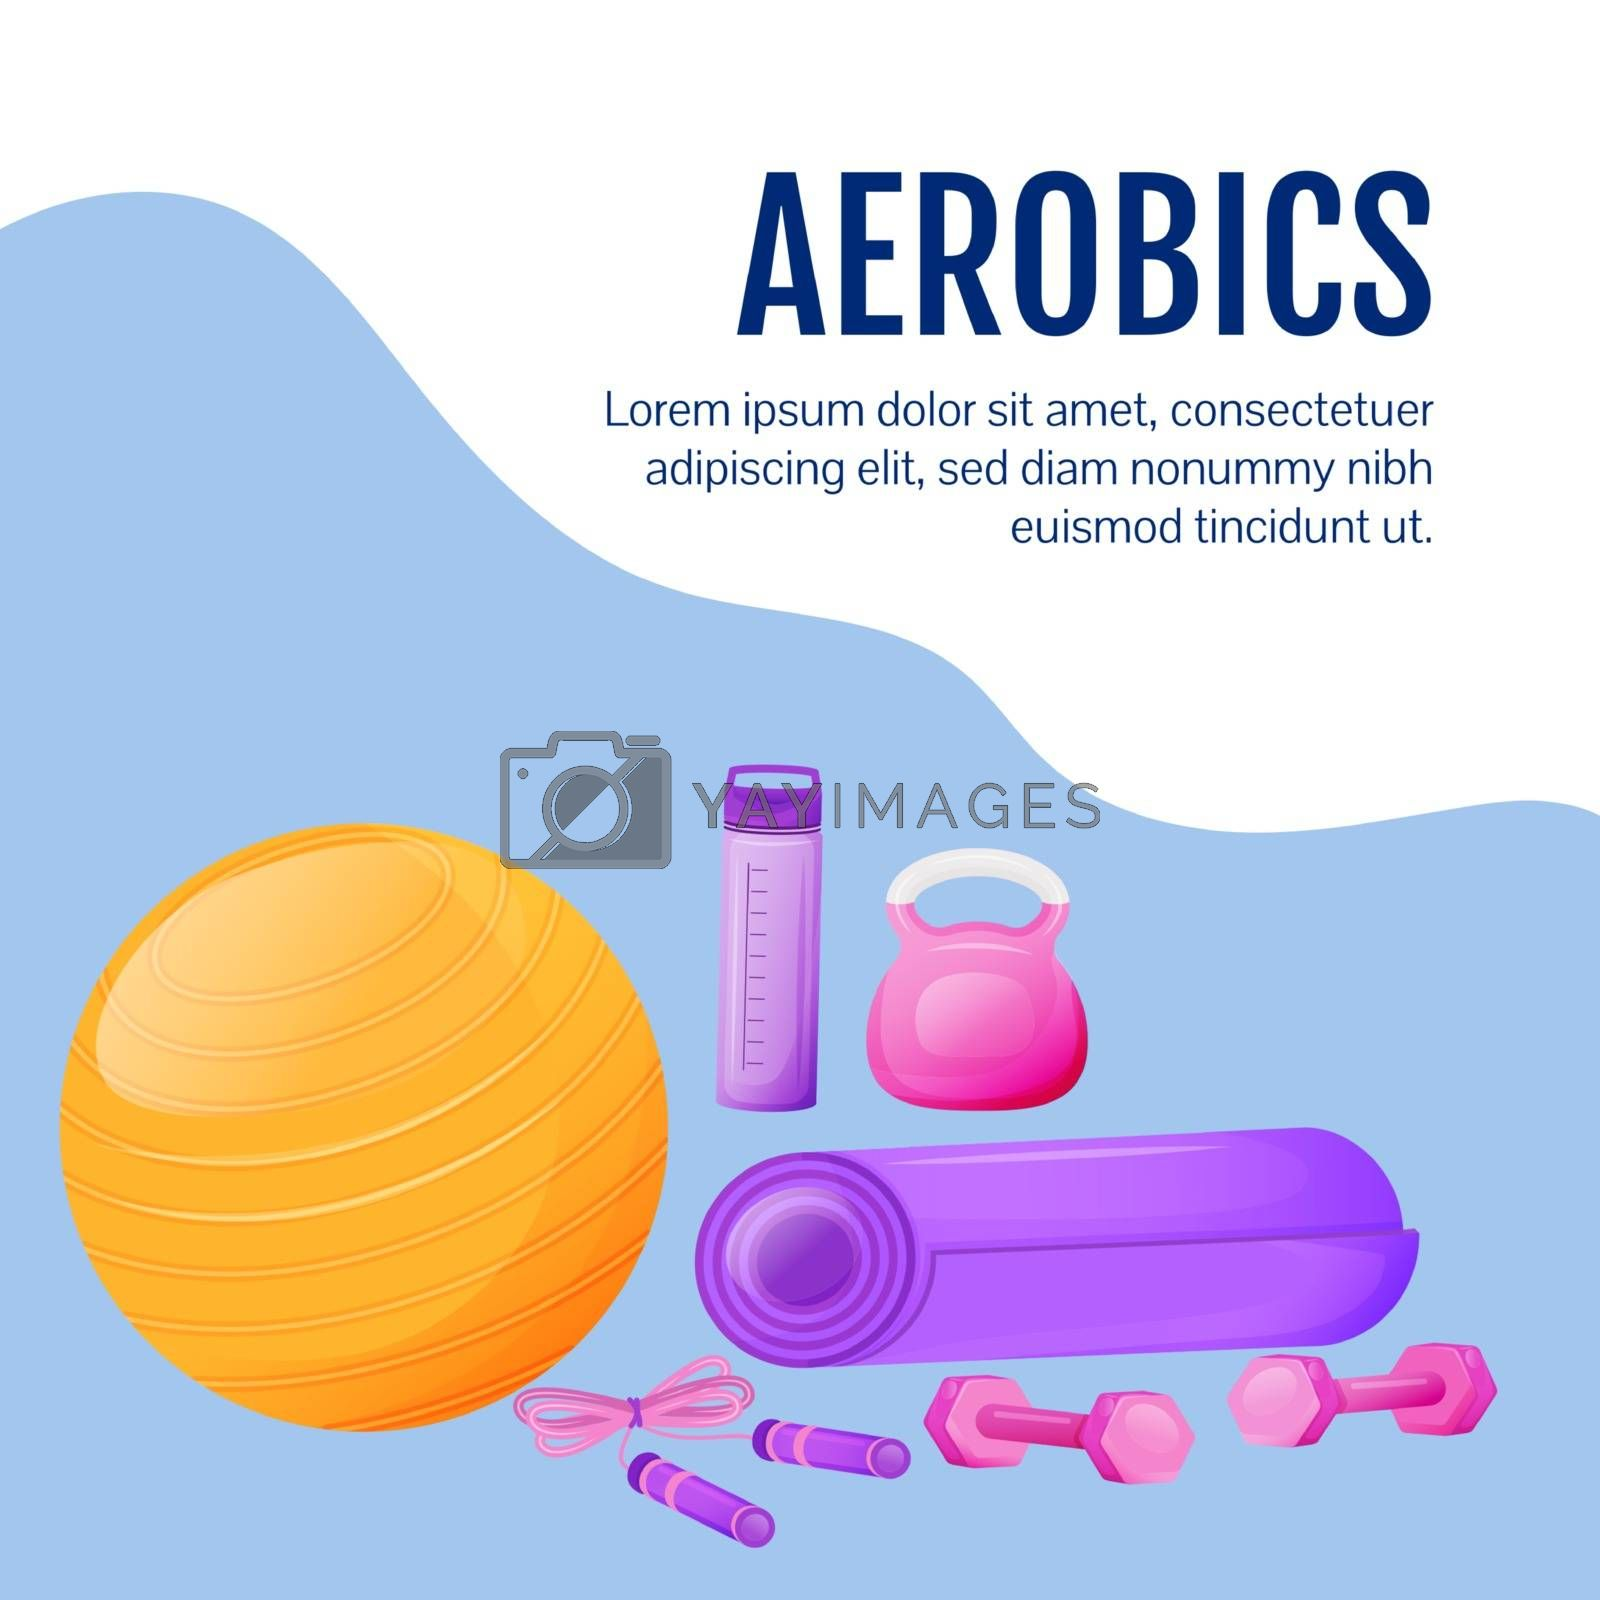 Fitness gear social media post mockup. Aerobics goods. Web banner design template. Gym sport equipment booster, content layout with inscription. Poster, print ads and flat illustration